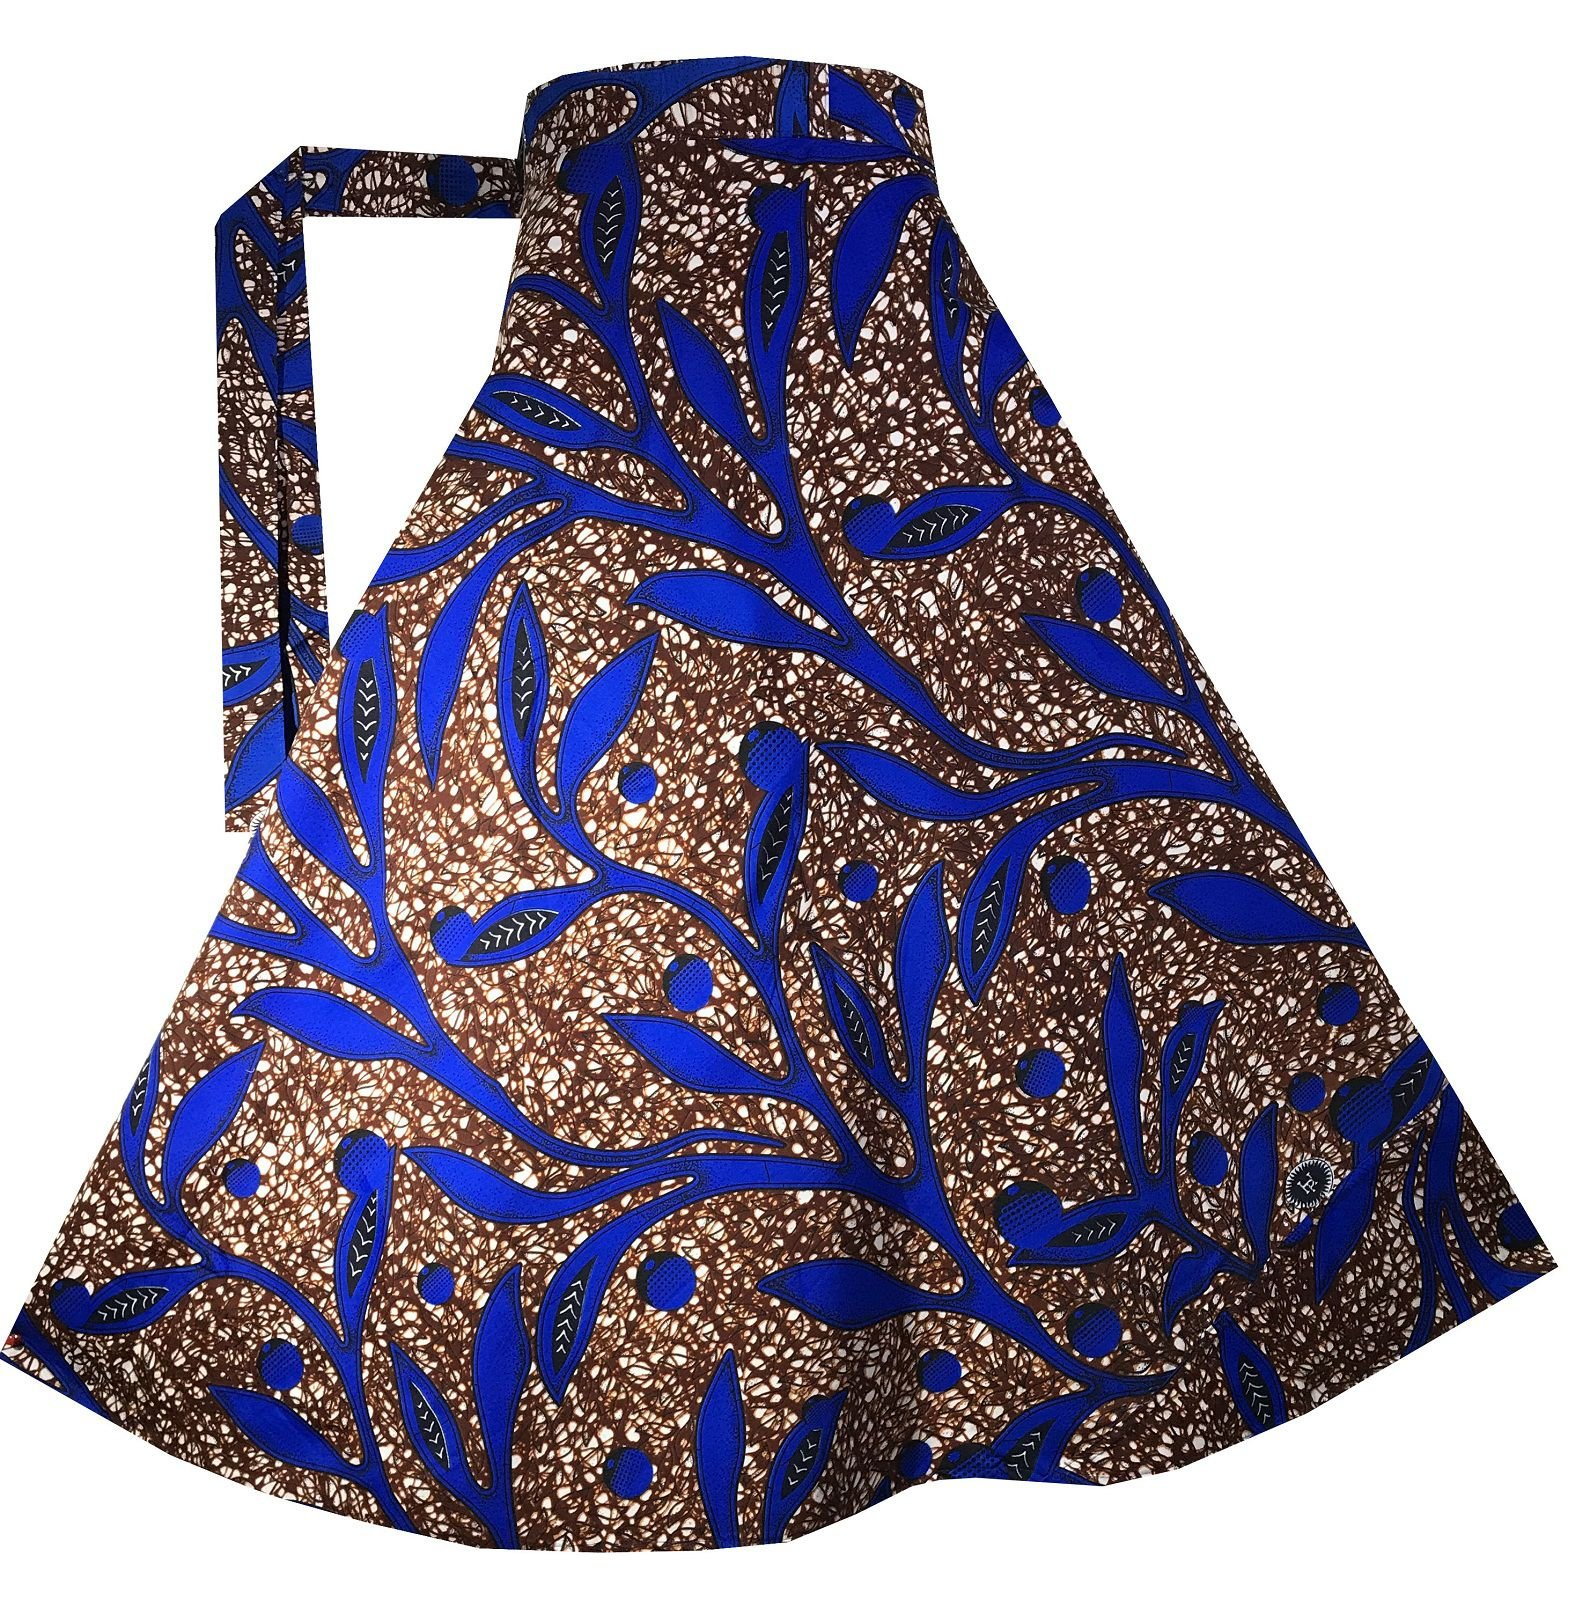 Decoraapparel Wrap Around Skirts African Wax Print Women's Flared Skirt Cotton Maxi Bright Colors by Decoraapparel (Image #1)